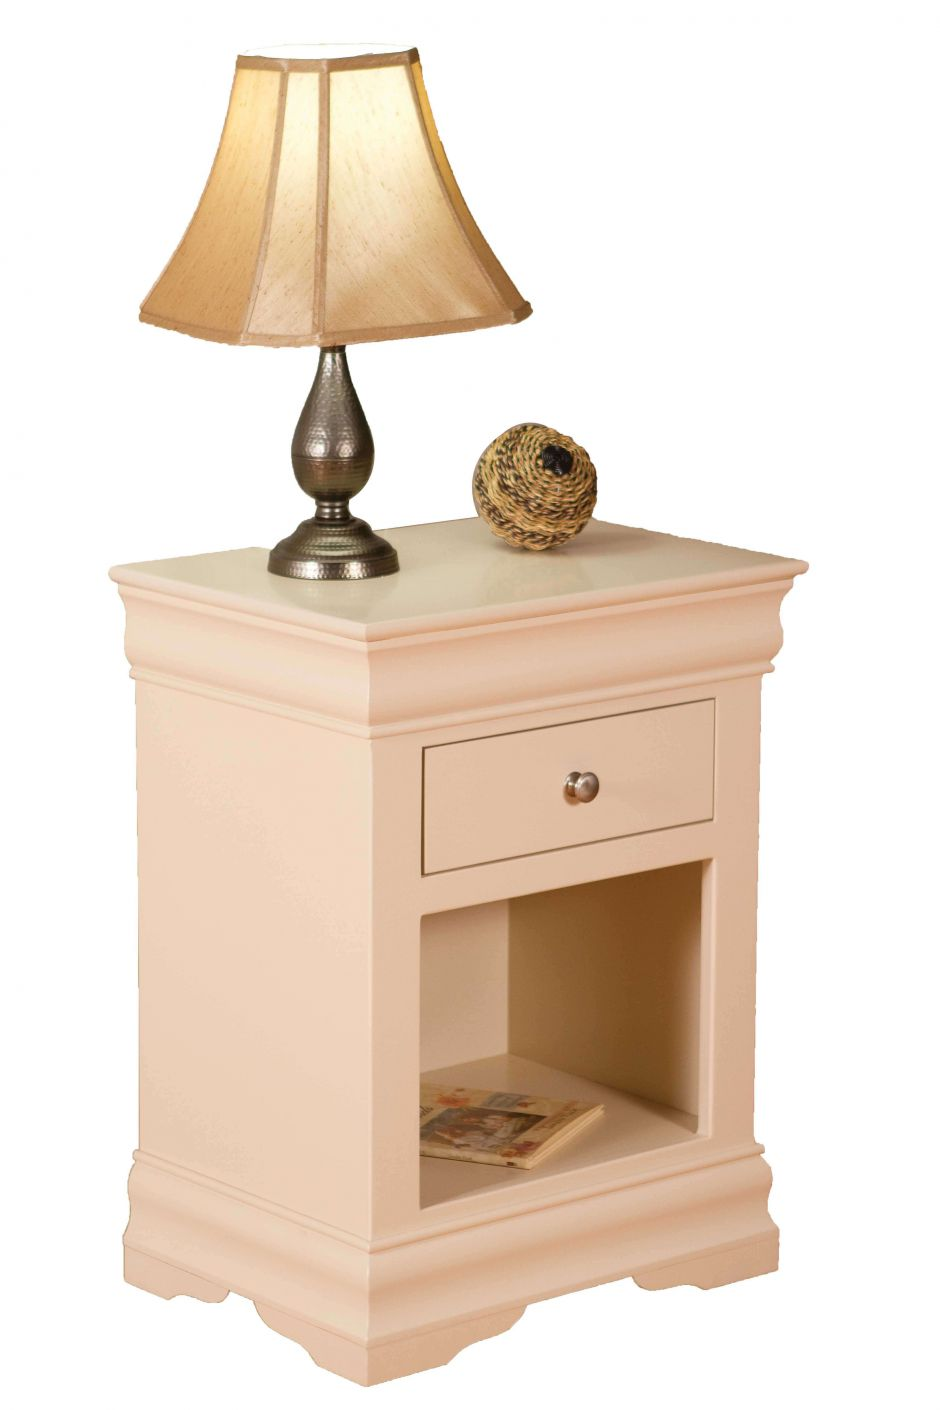 french country nightstand dimensions 633 800 80